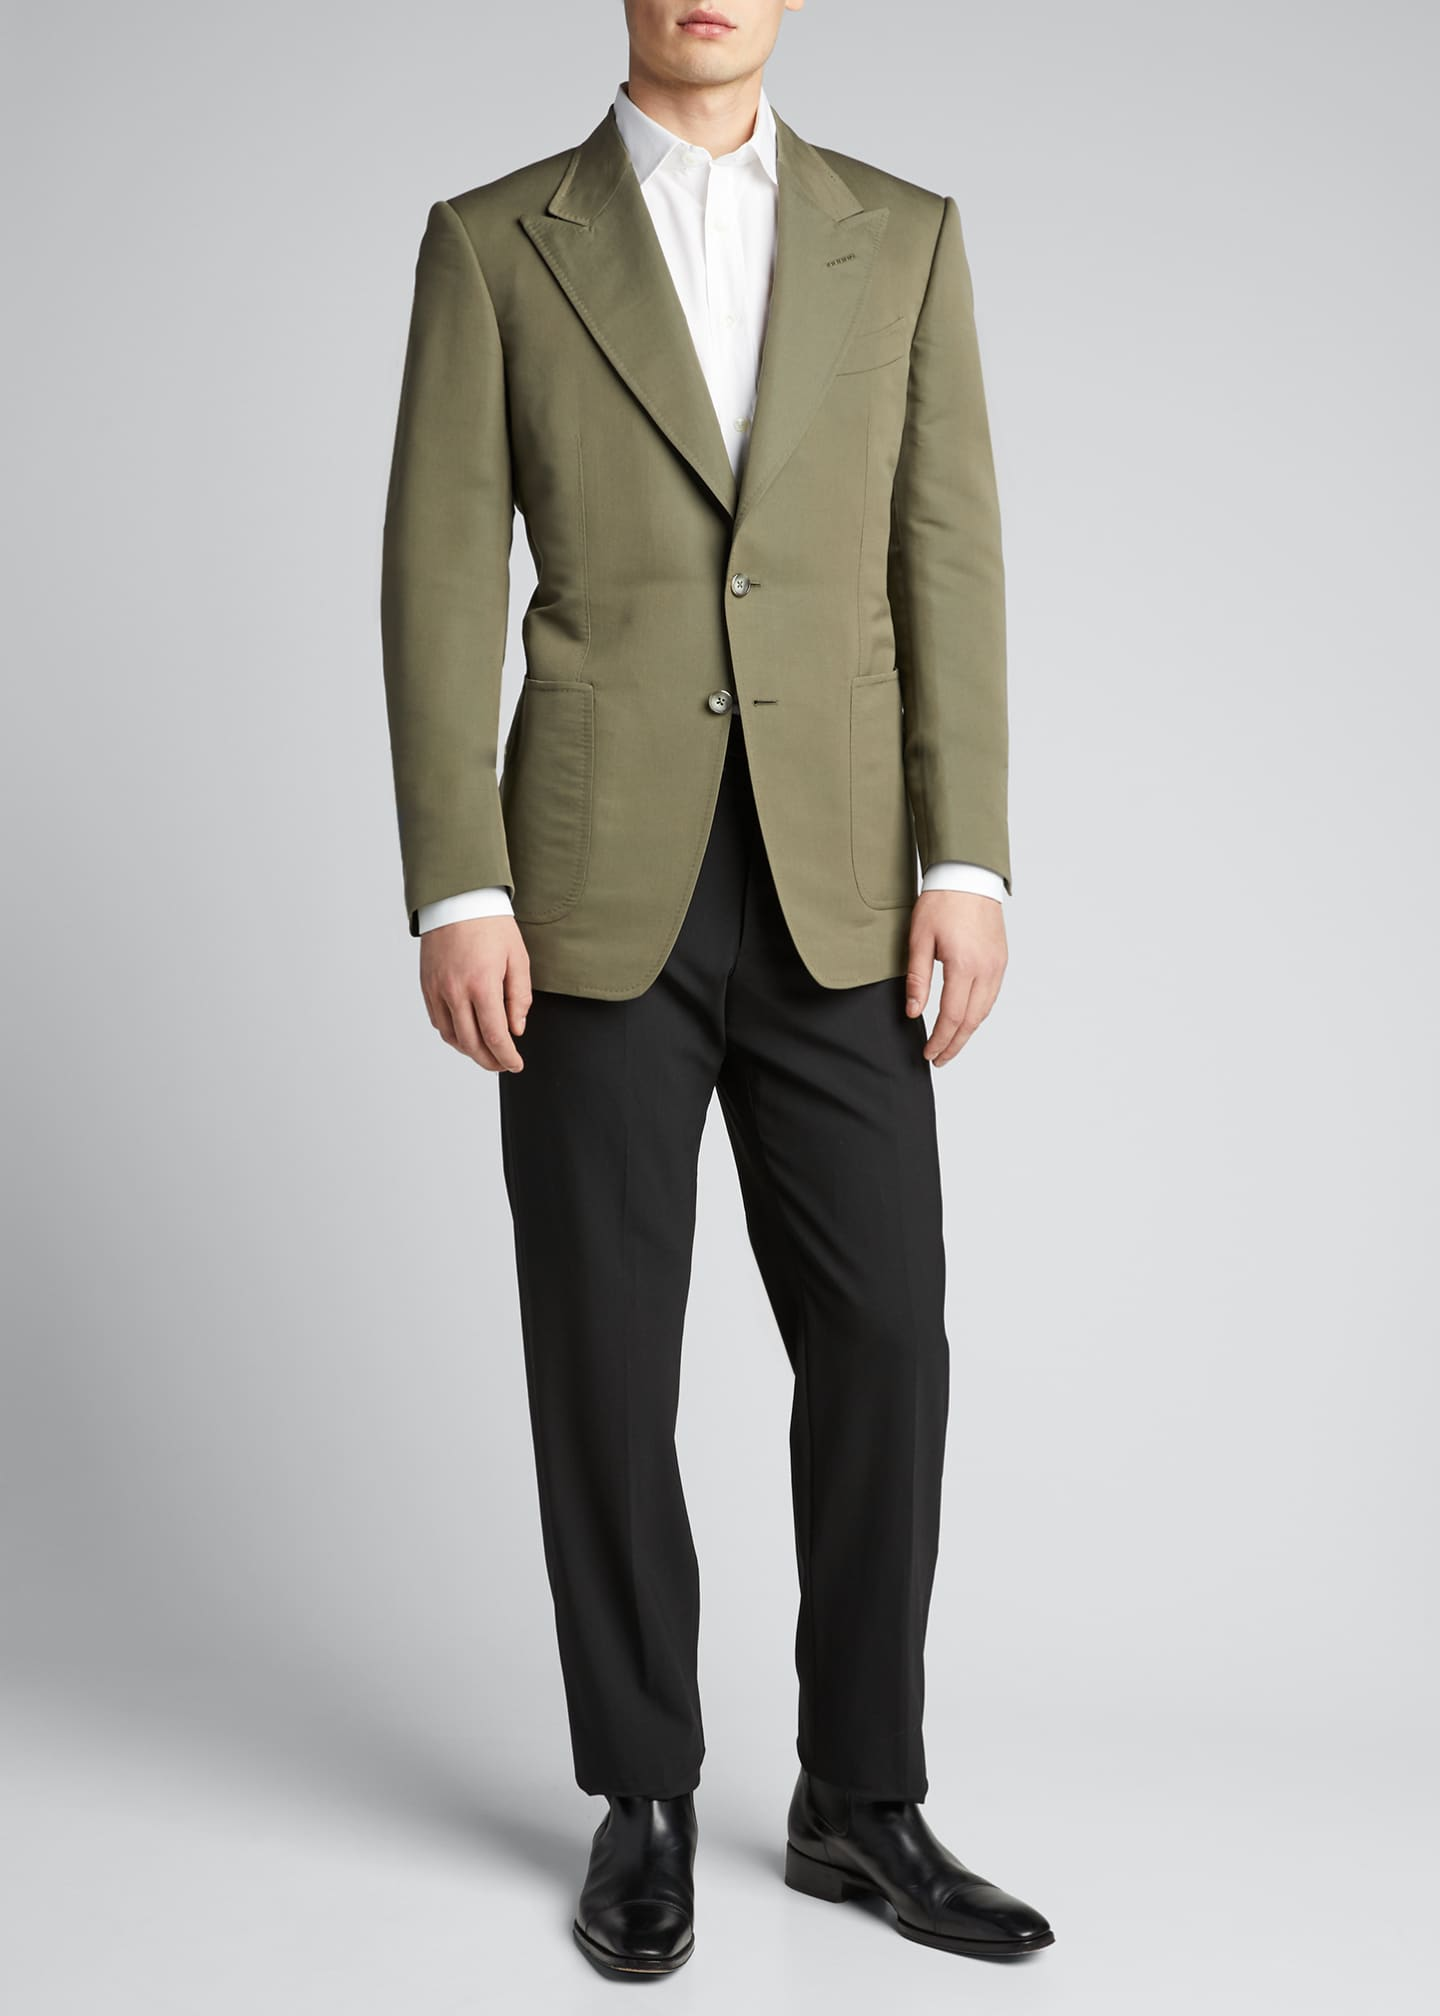 Men's Peak-Lapel Poplin Shelton Dinner Jacket